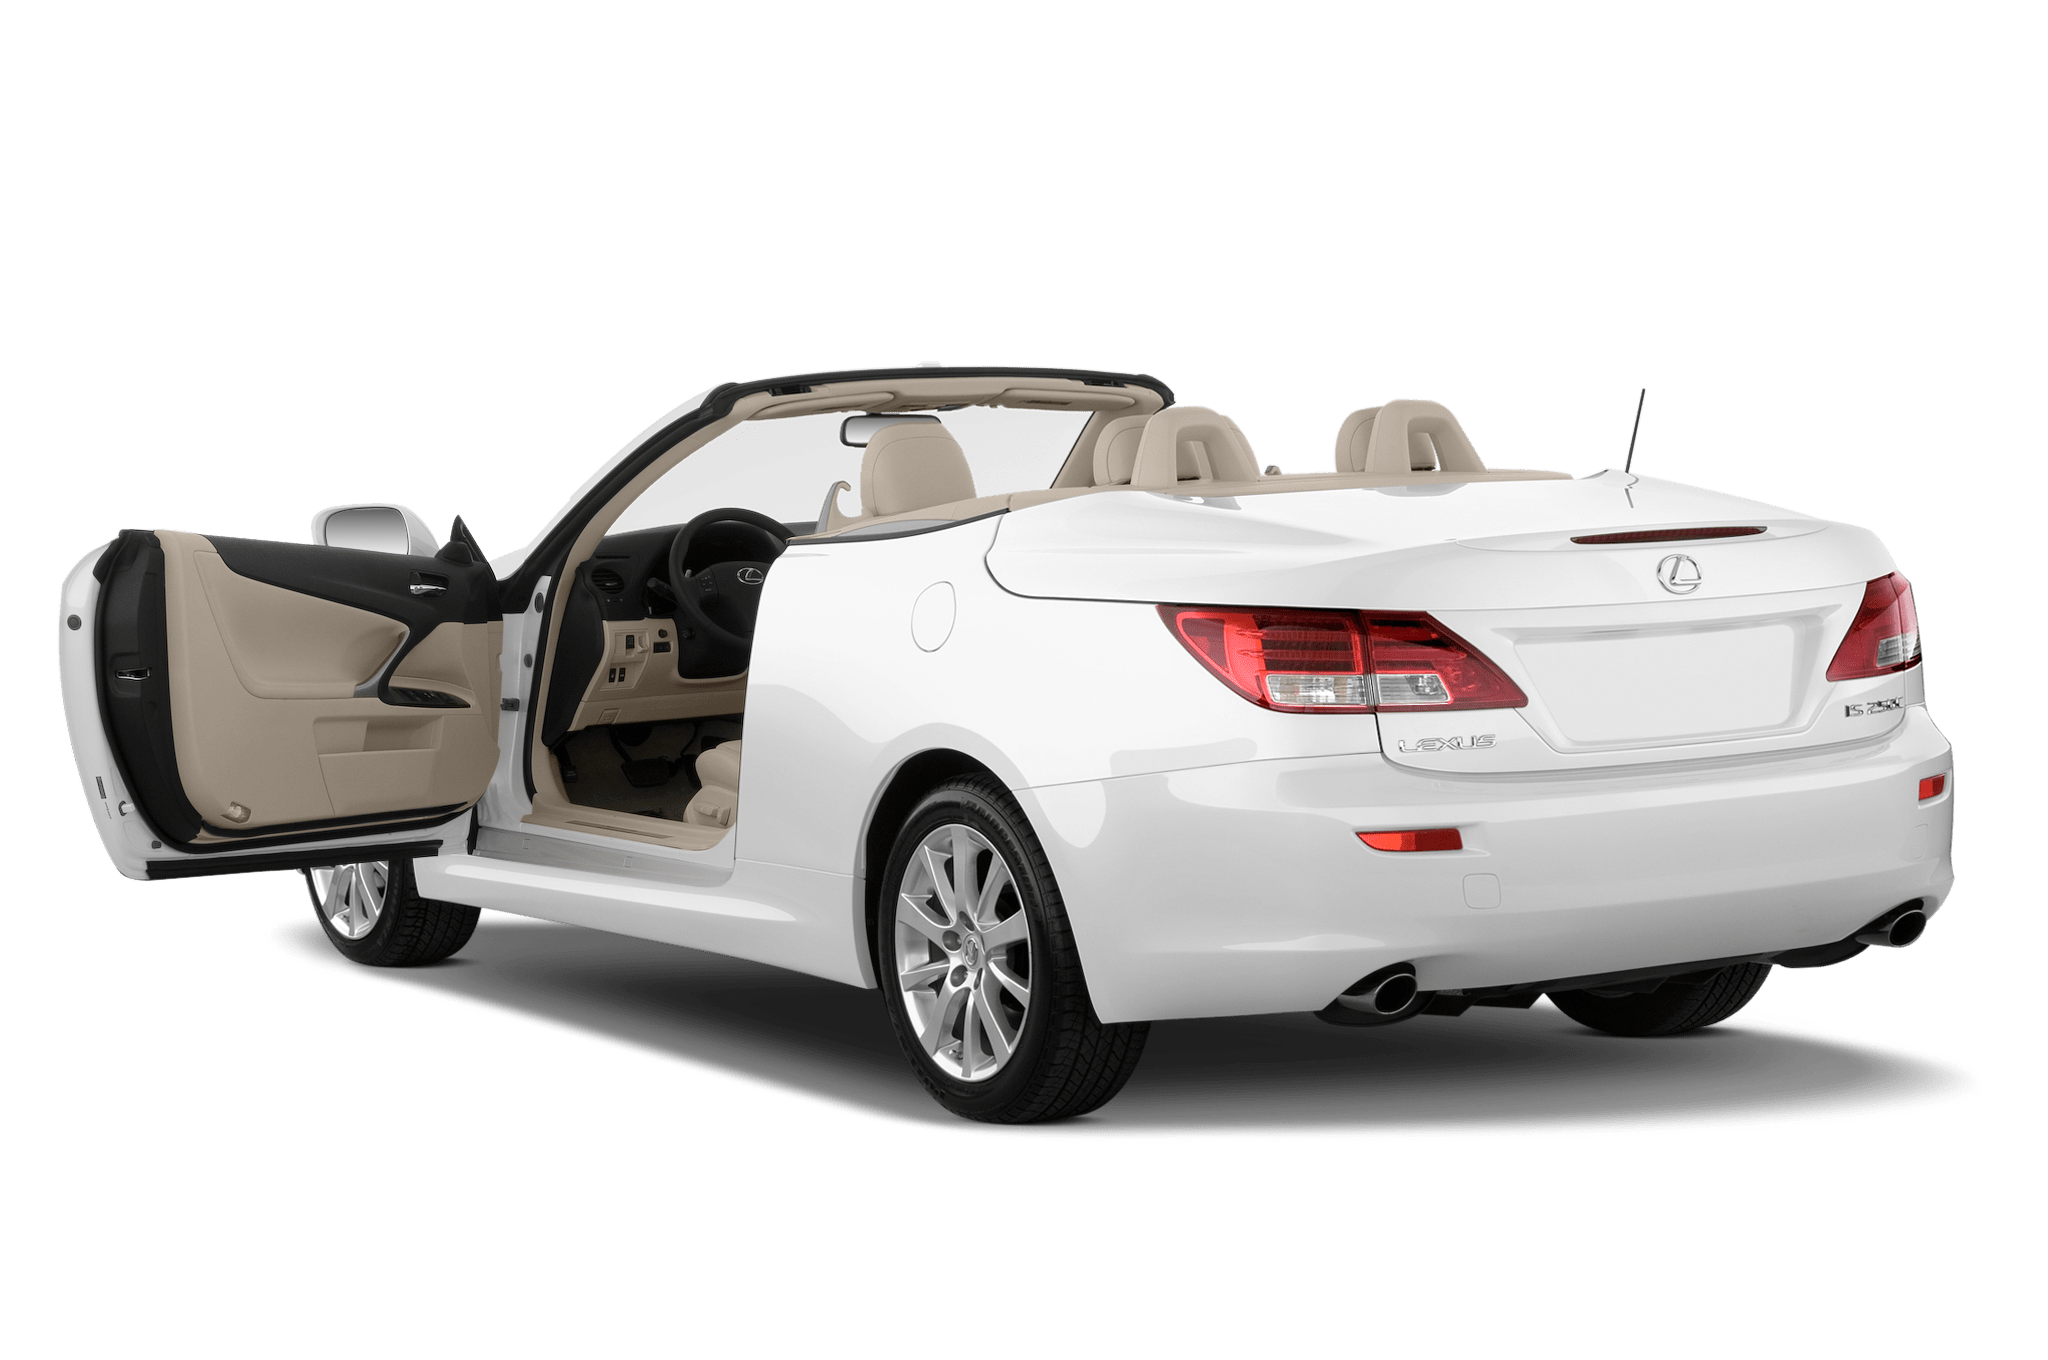 Pricing for 2010 Lexus RX Hybrid and 2010 Lexus IS Convertible